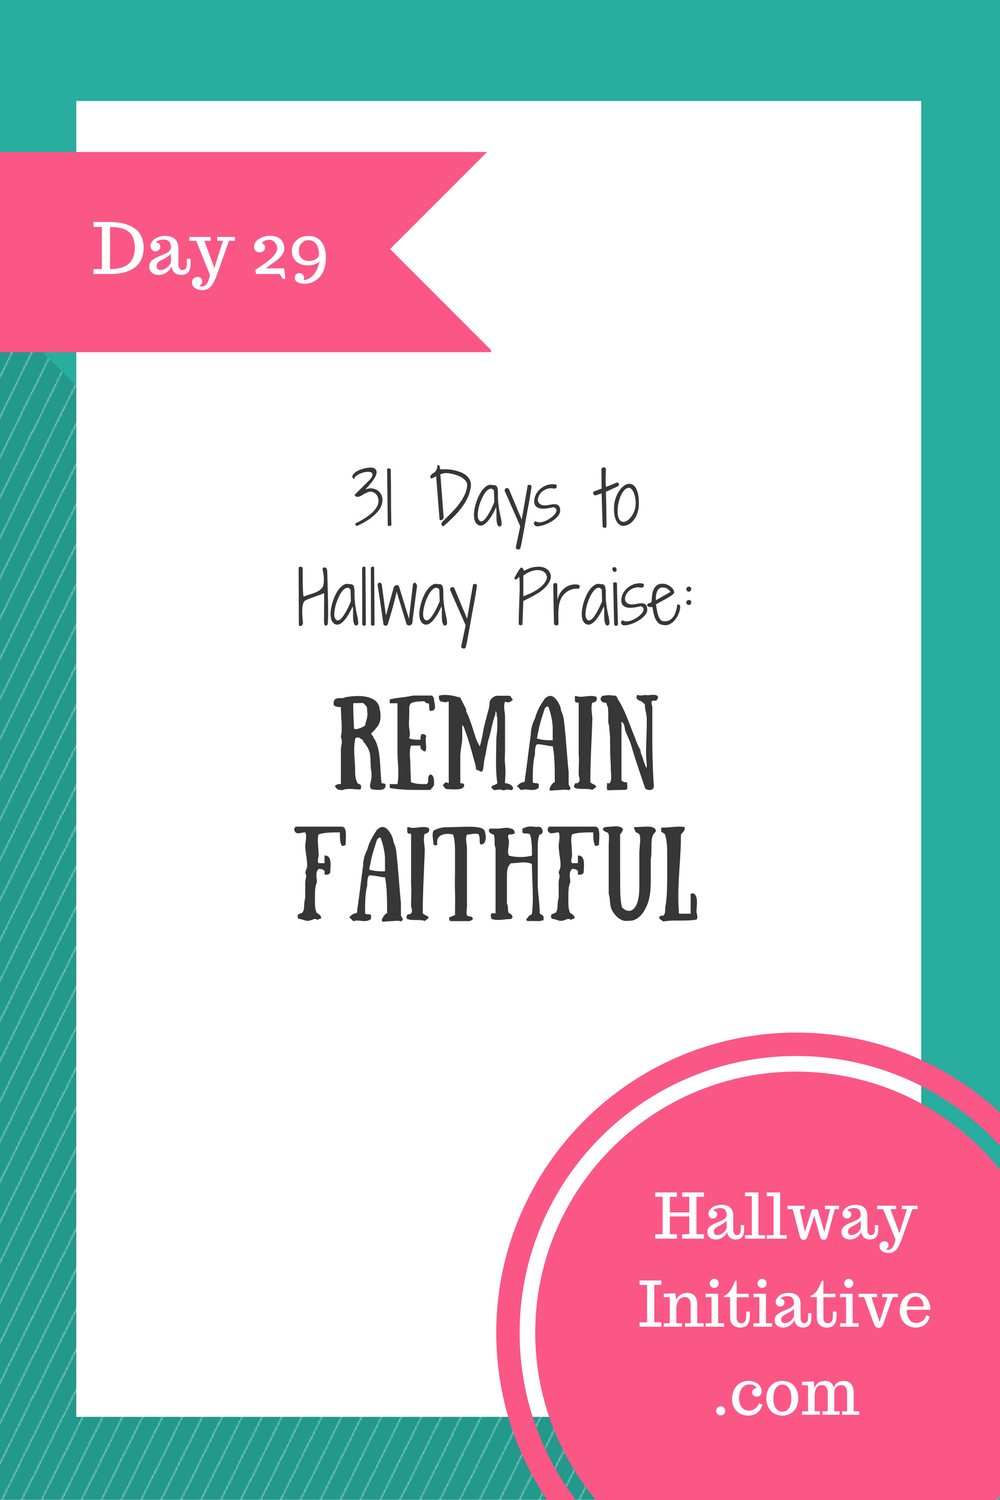 Day 29: remain faithful